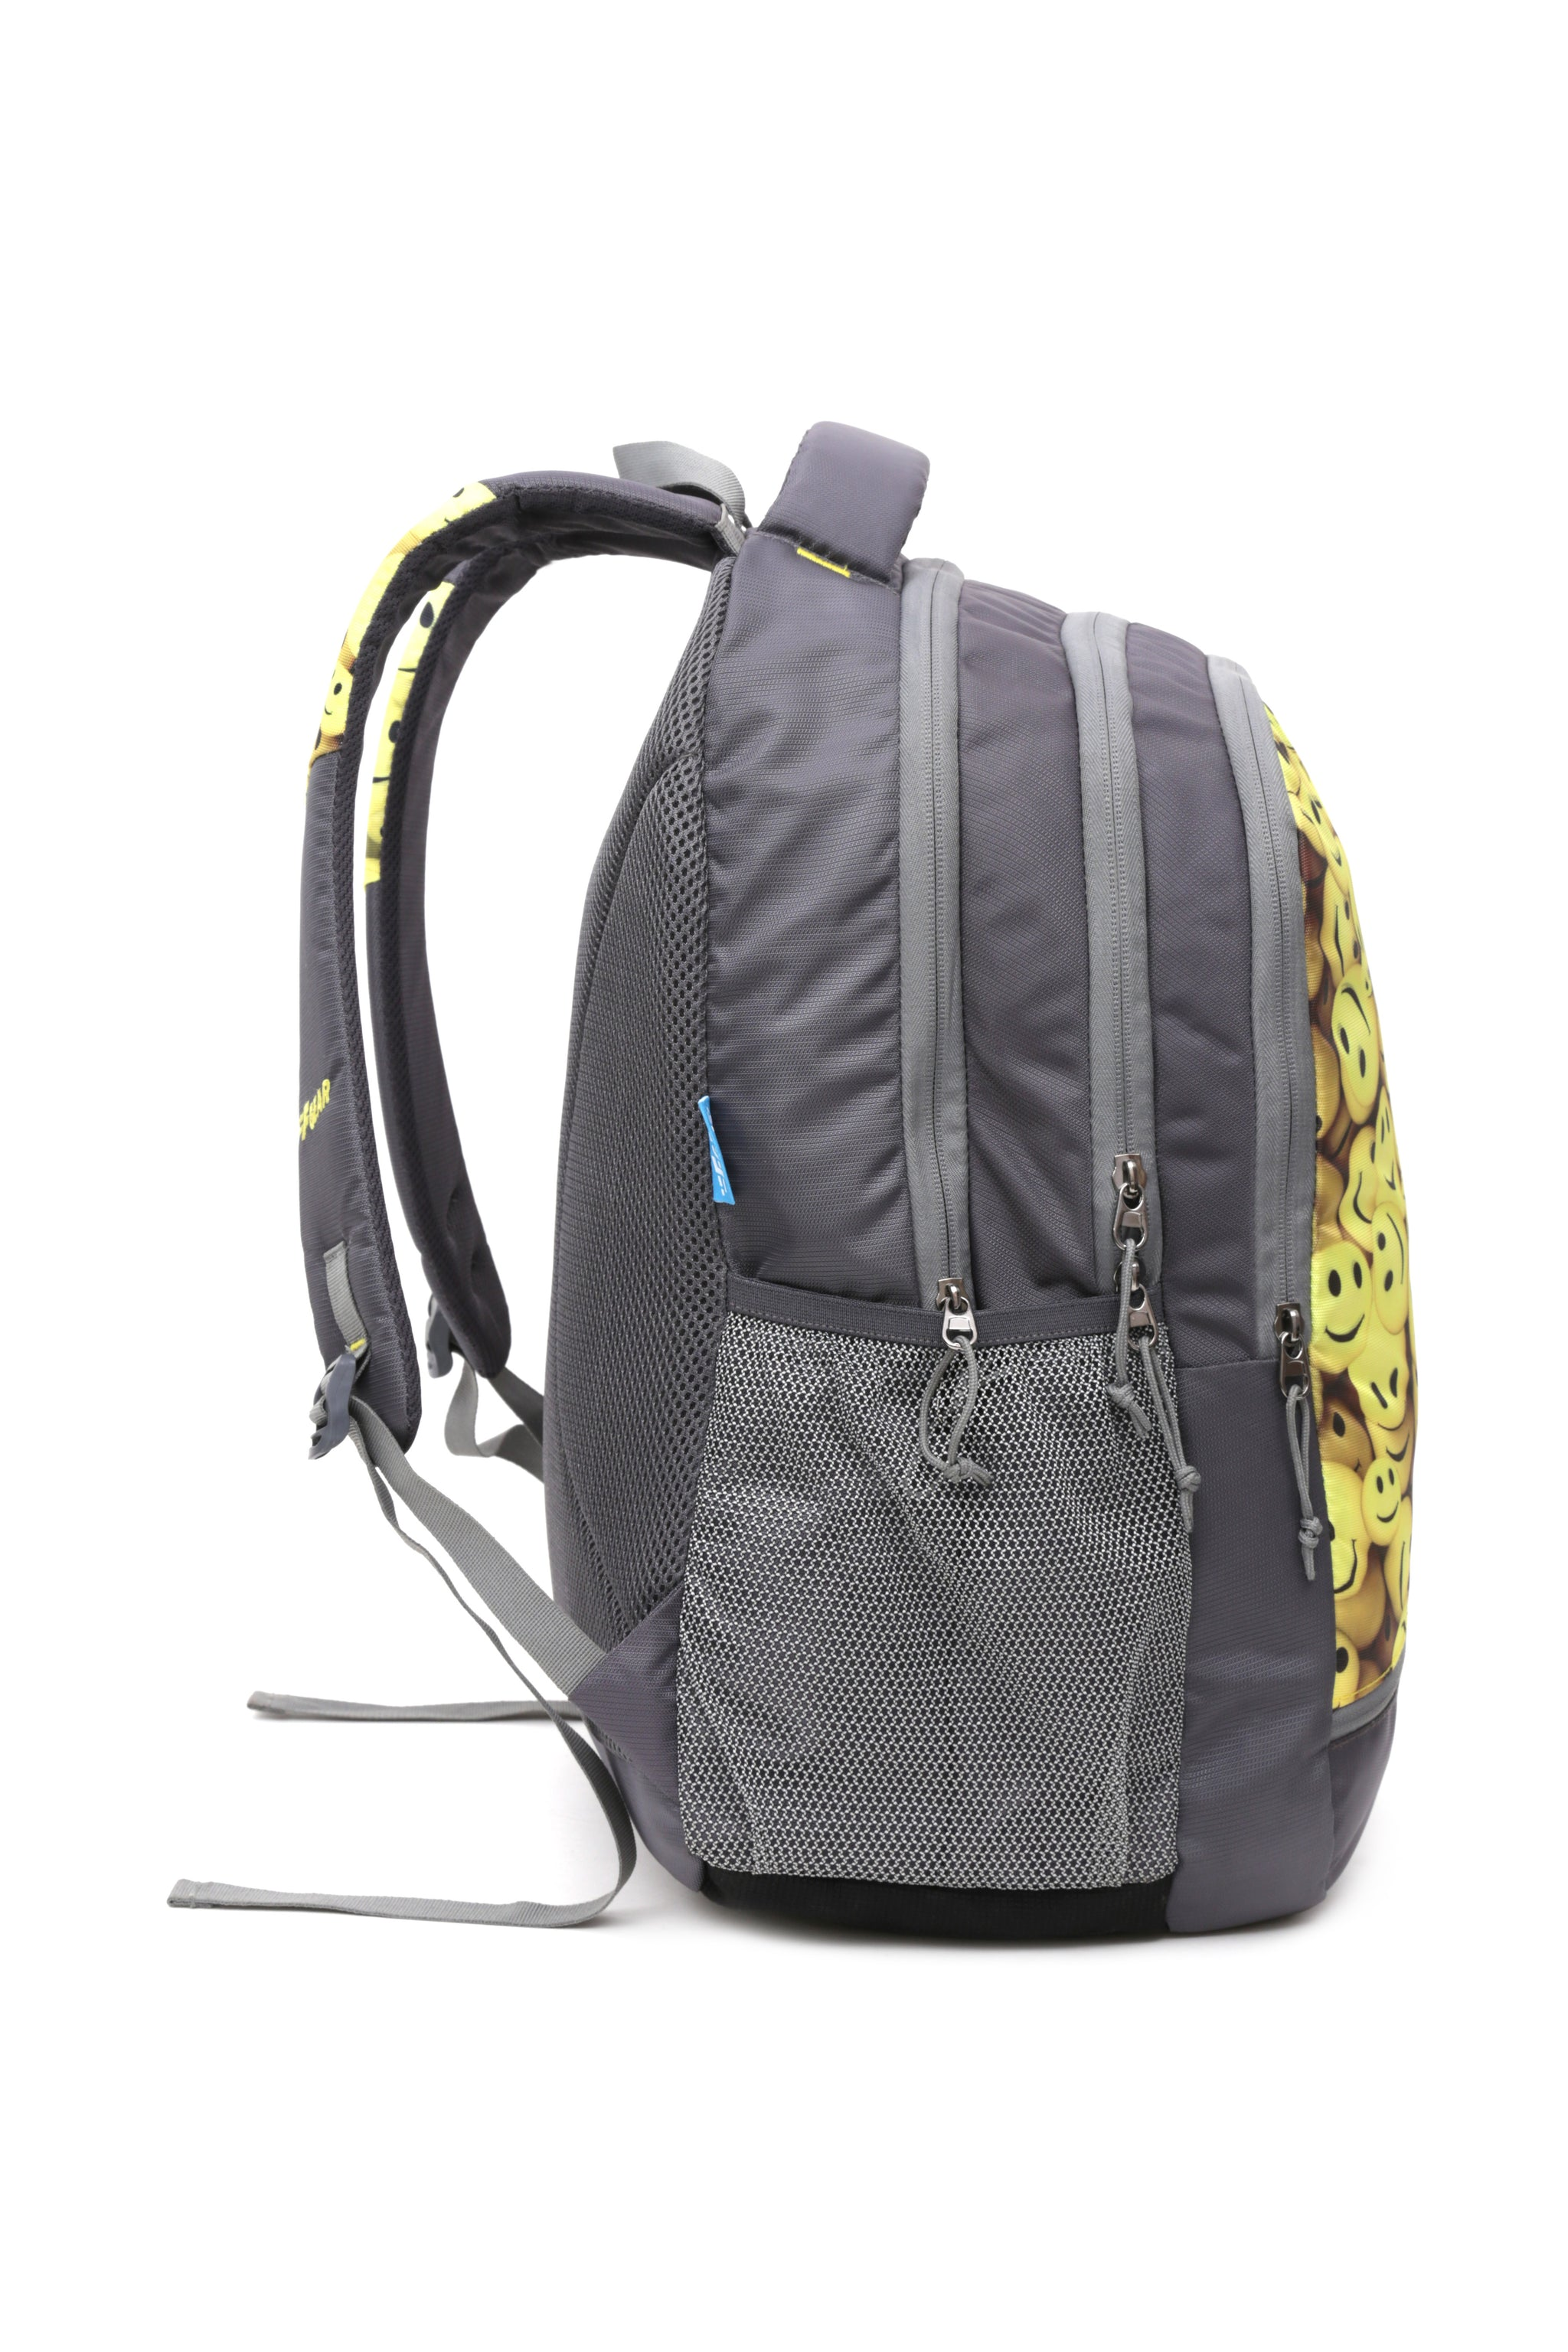 F Gear Smiley 35 Liters Backpack with Rain Cover (Grey, Yellow)